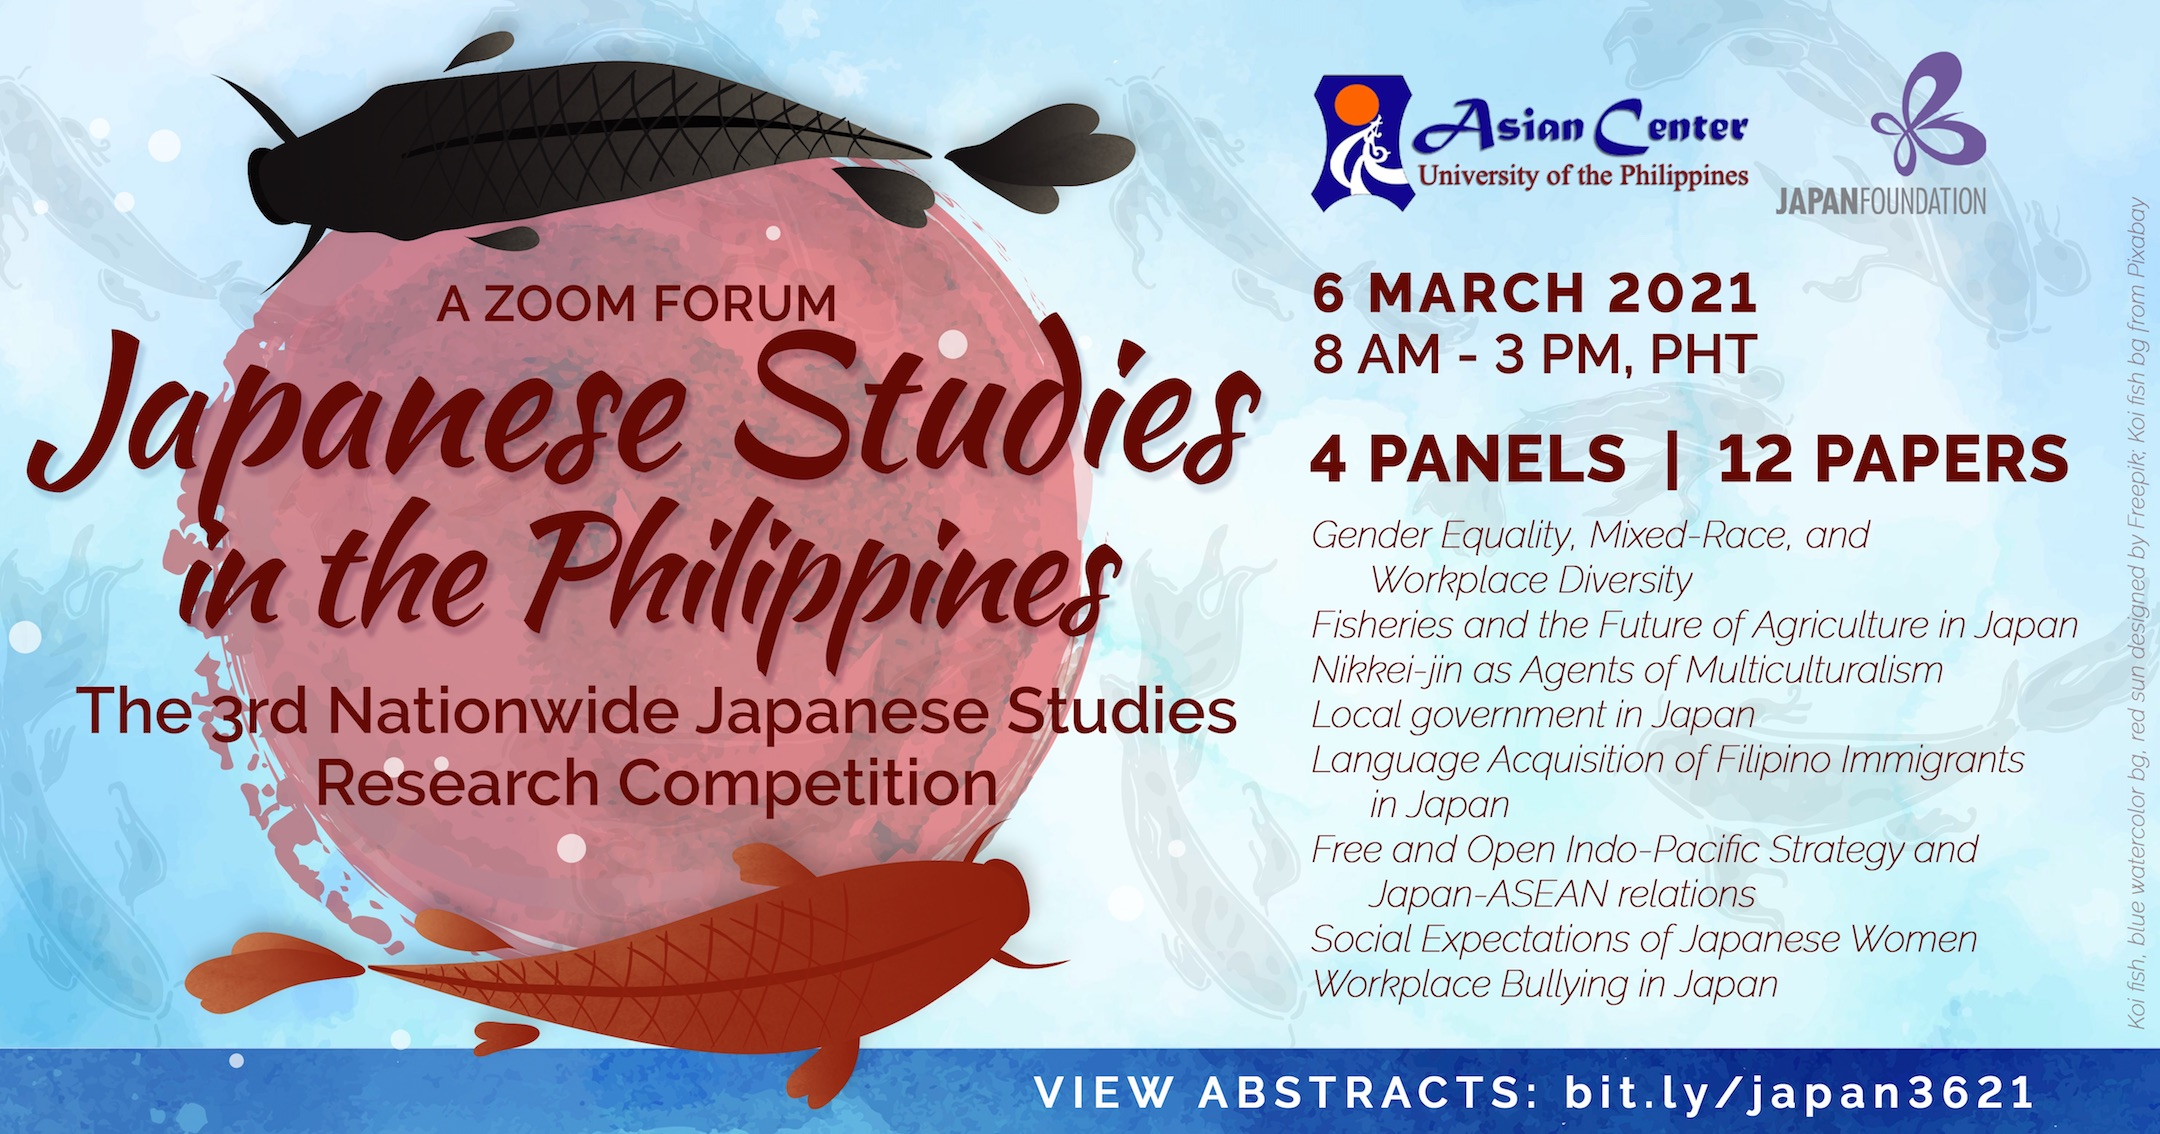 Japanese Studies in the Philippines: A Forum and Nationwide Research Competition Year 3